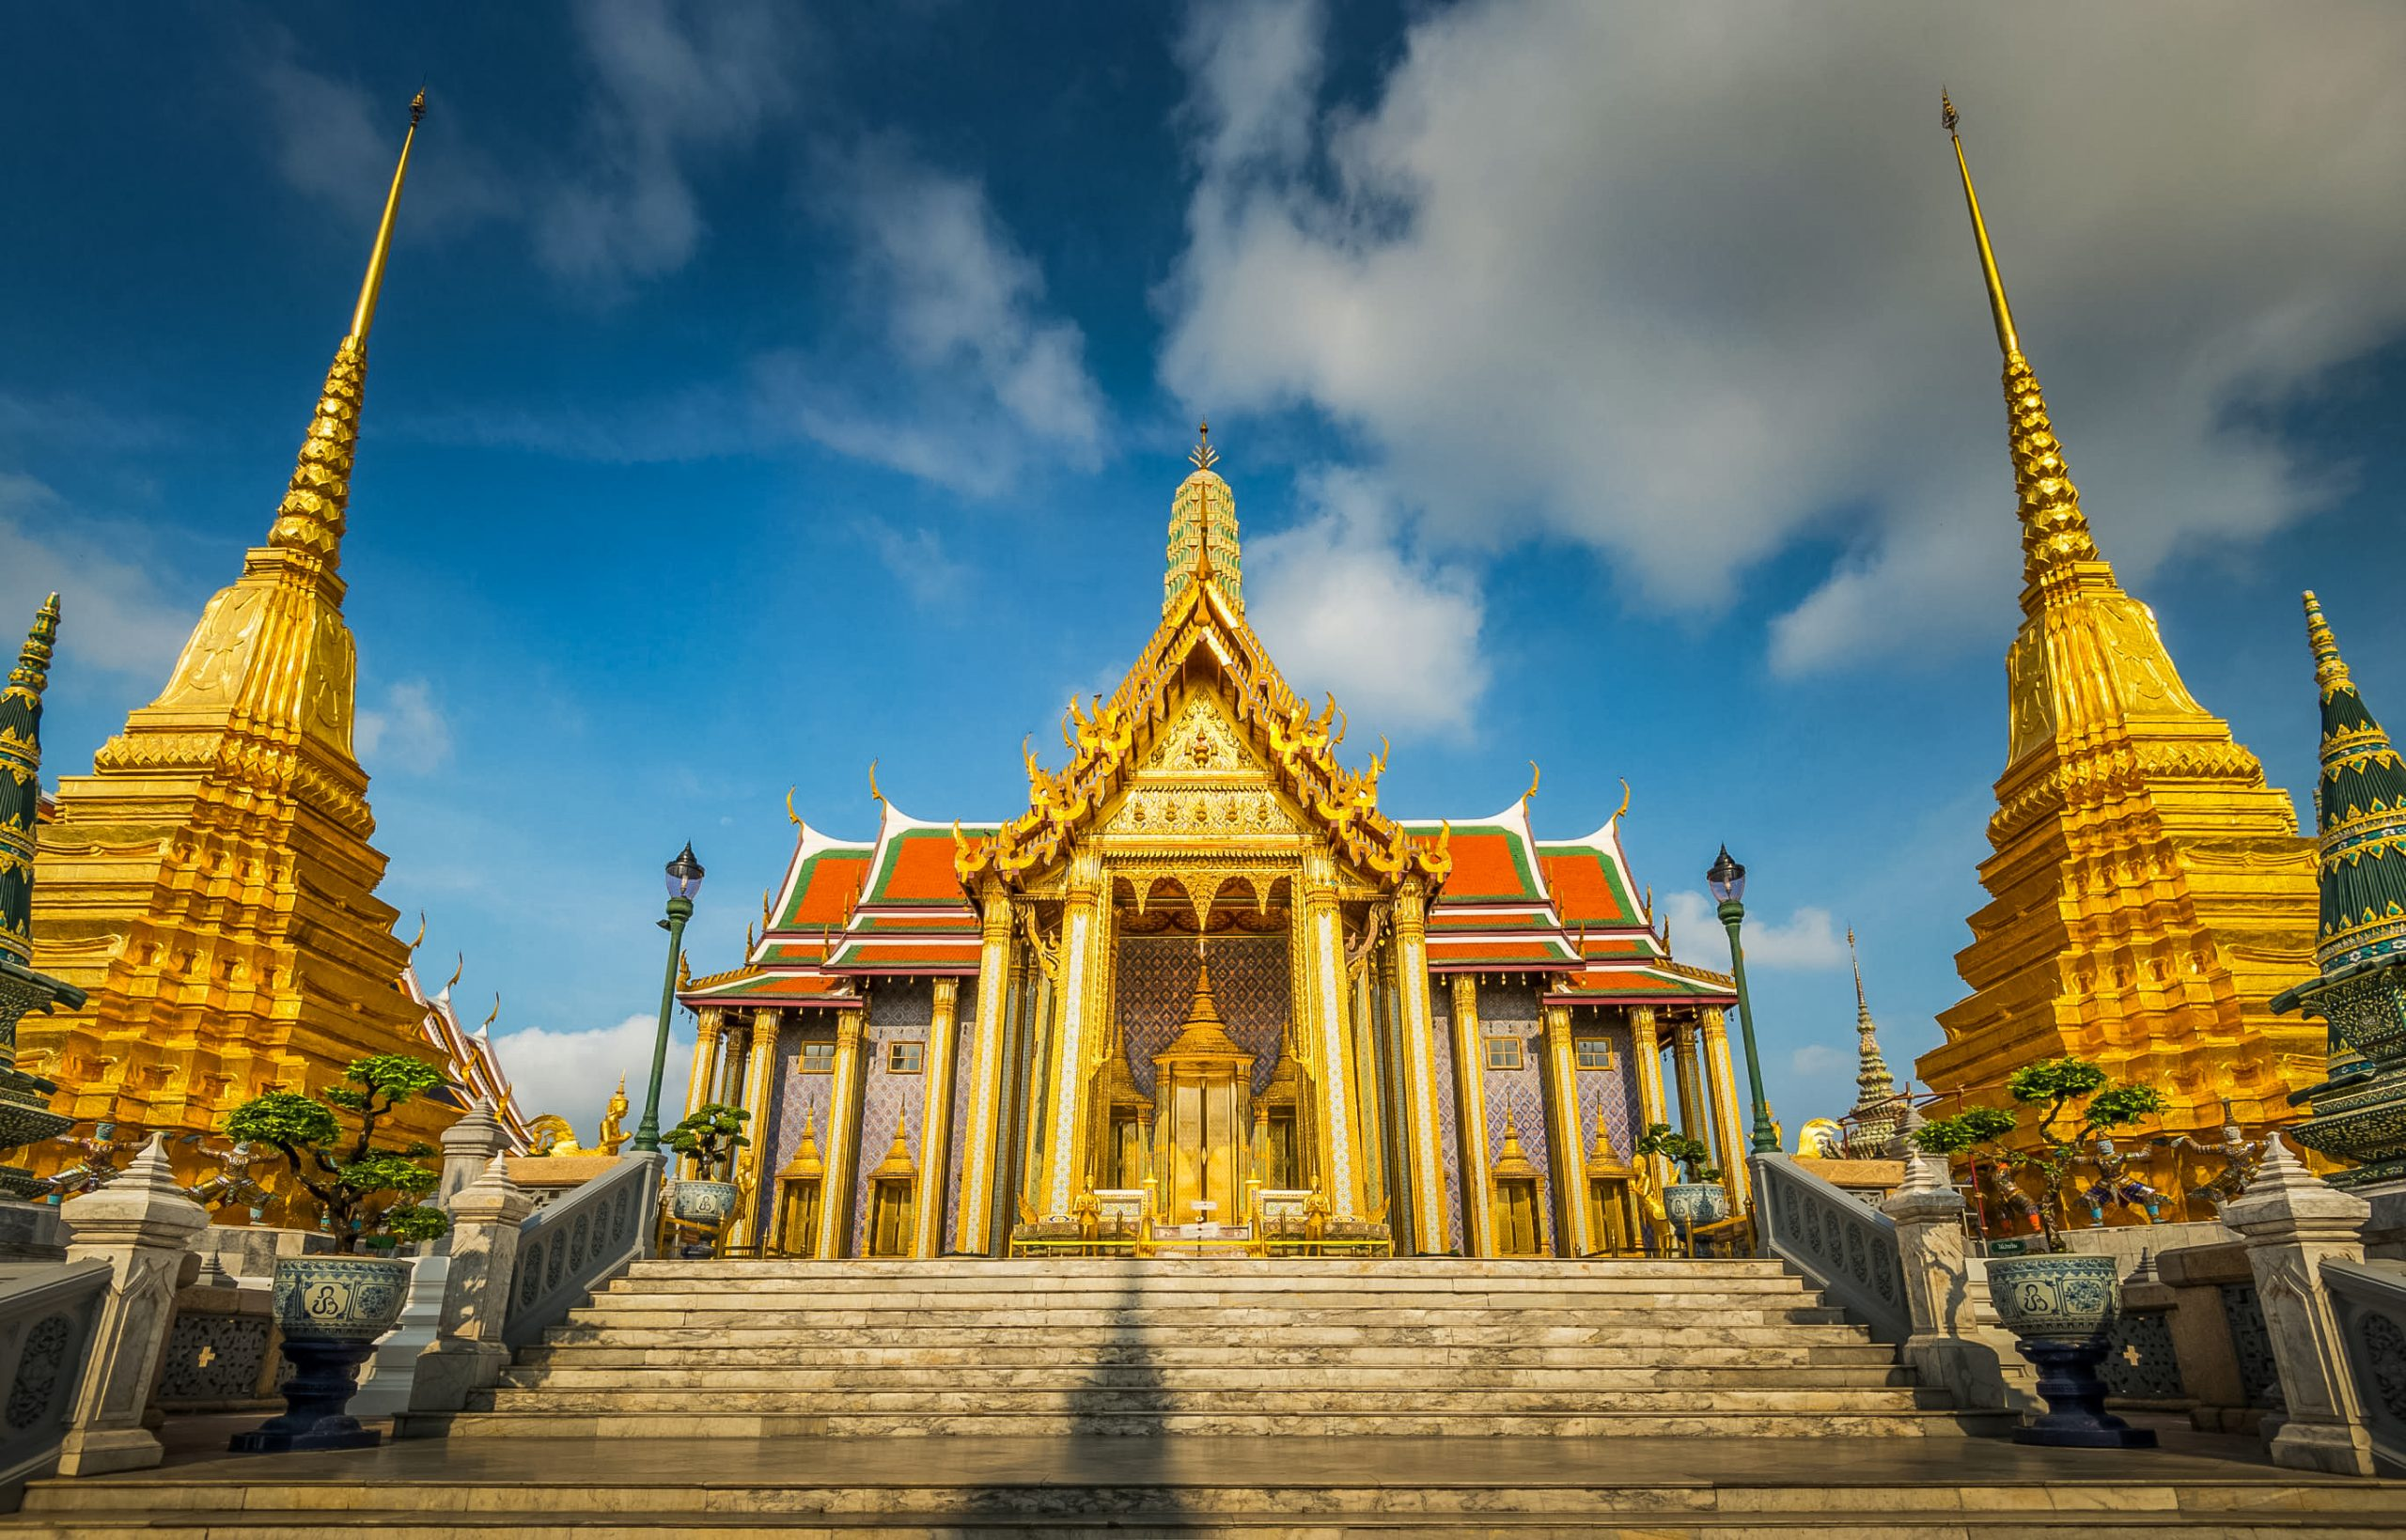 Wat Phra Kaew is commonly known as the Temple of the Emerald Buddha, located in Bangkok, Thailand.